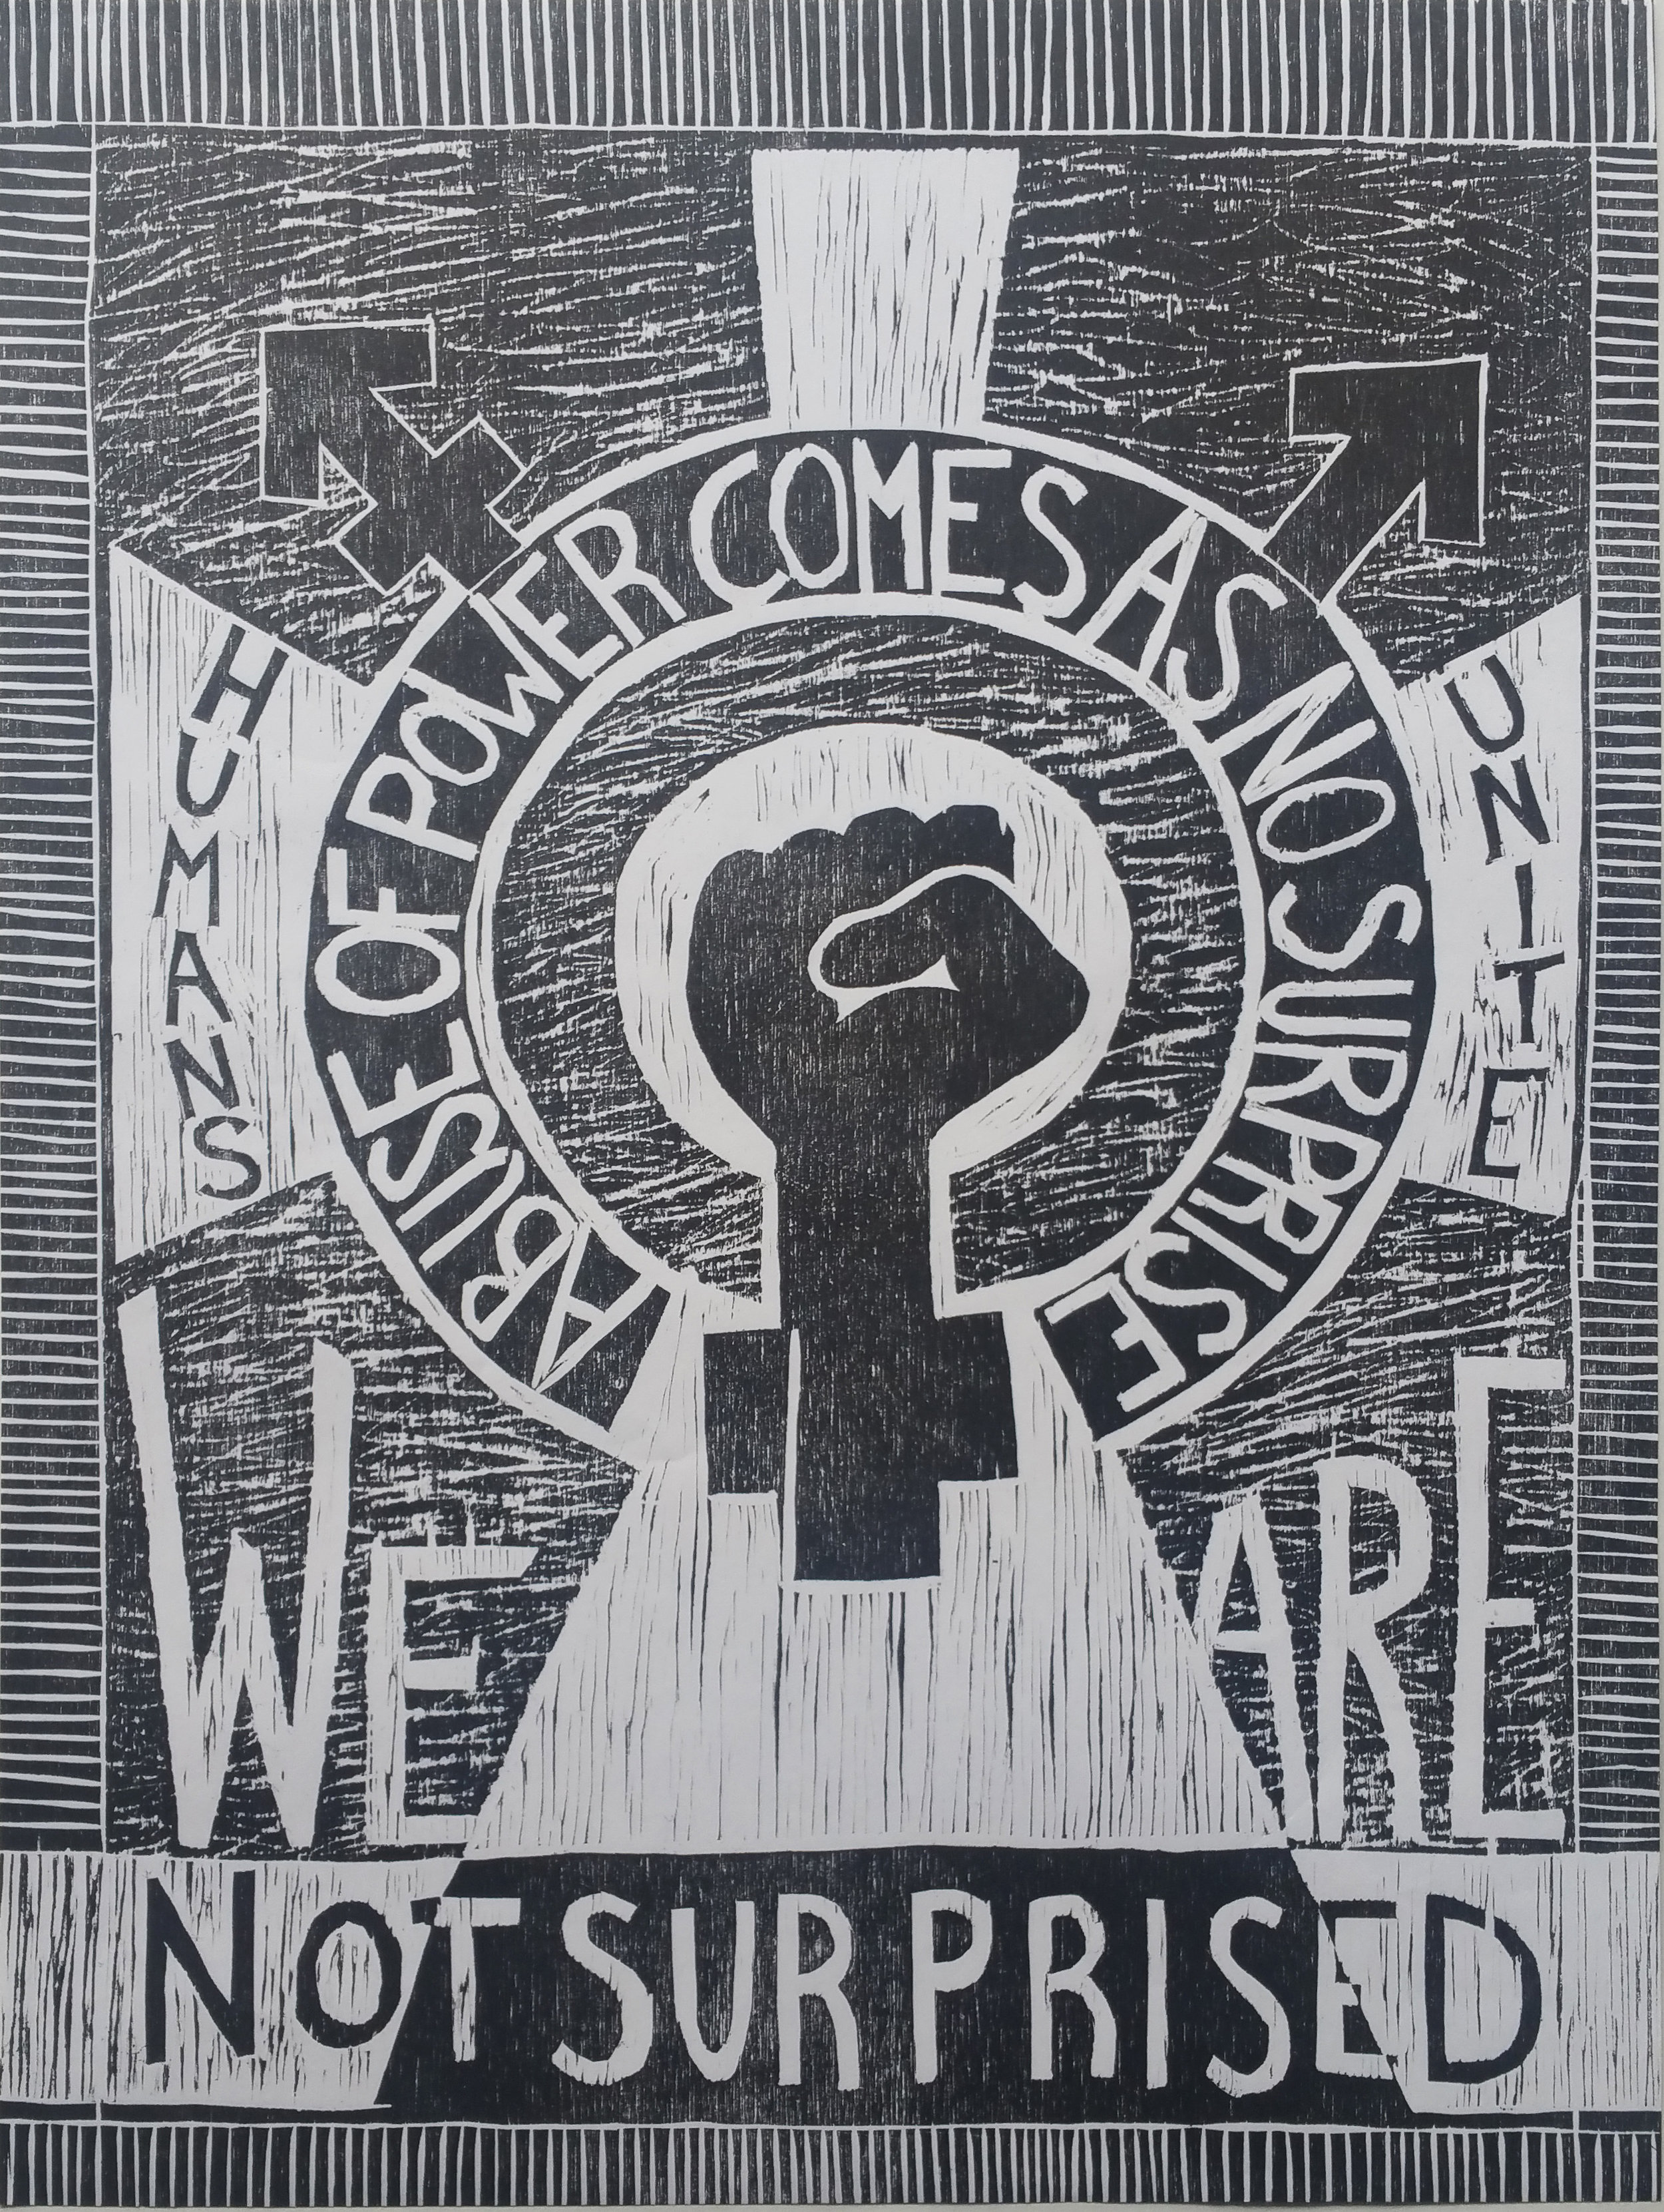 Abuse of power comes as no surprise woodcut 11.2017.jpg